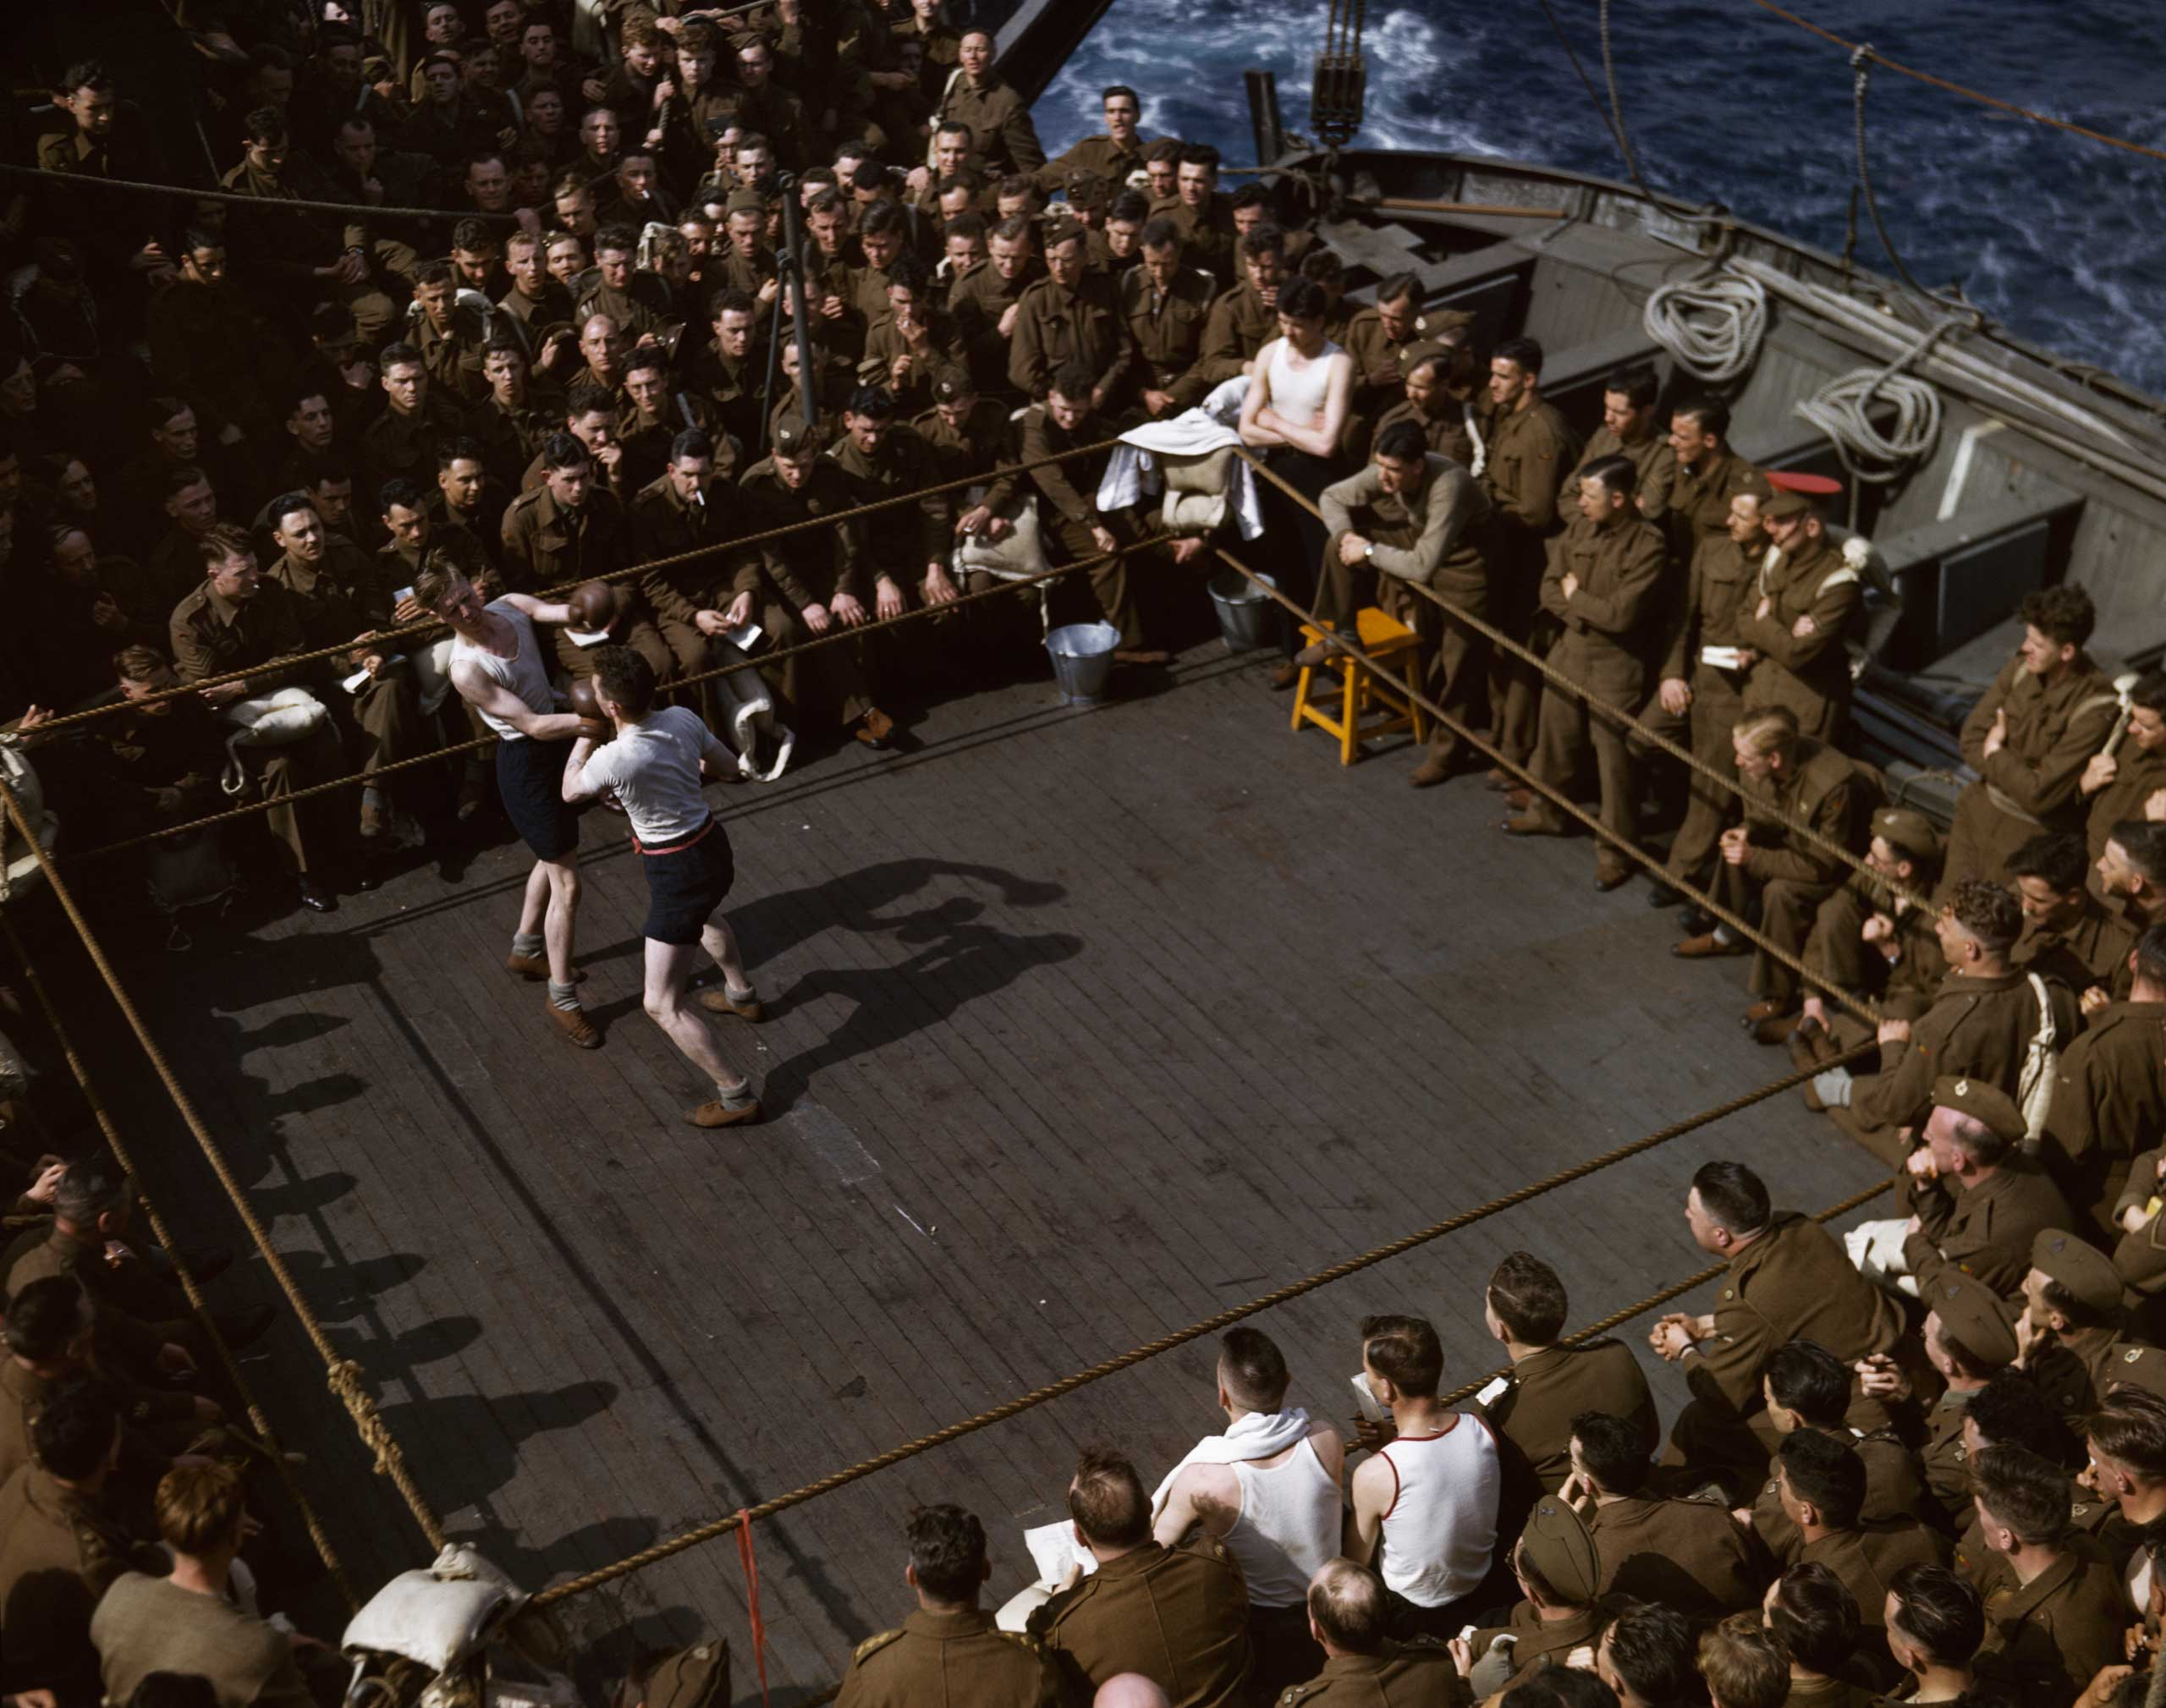 British soldiers watching a boxing match on a troop ship from England to North Africa, 1943.